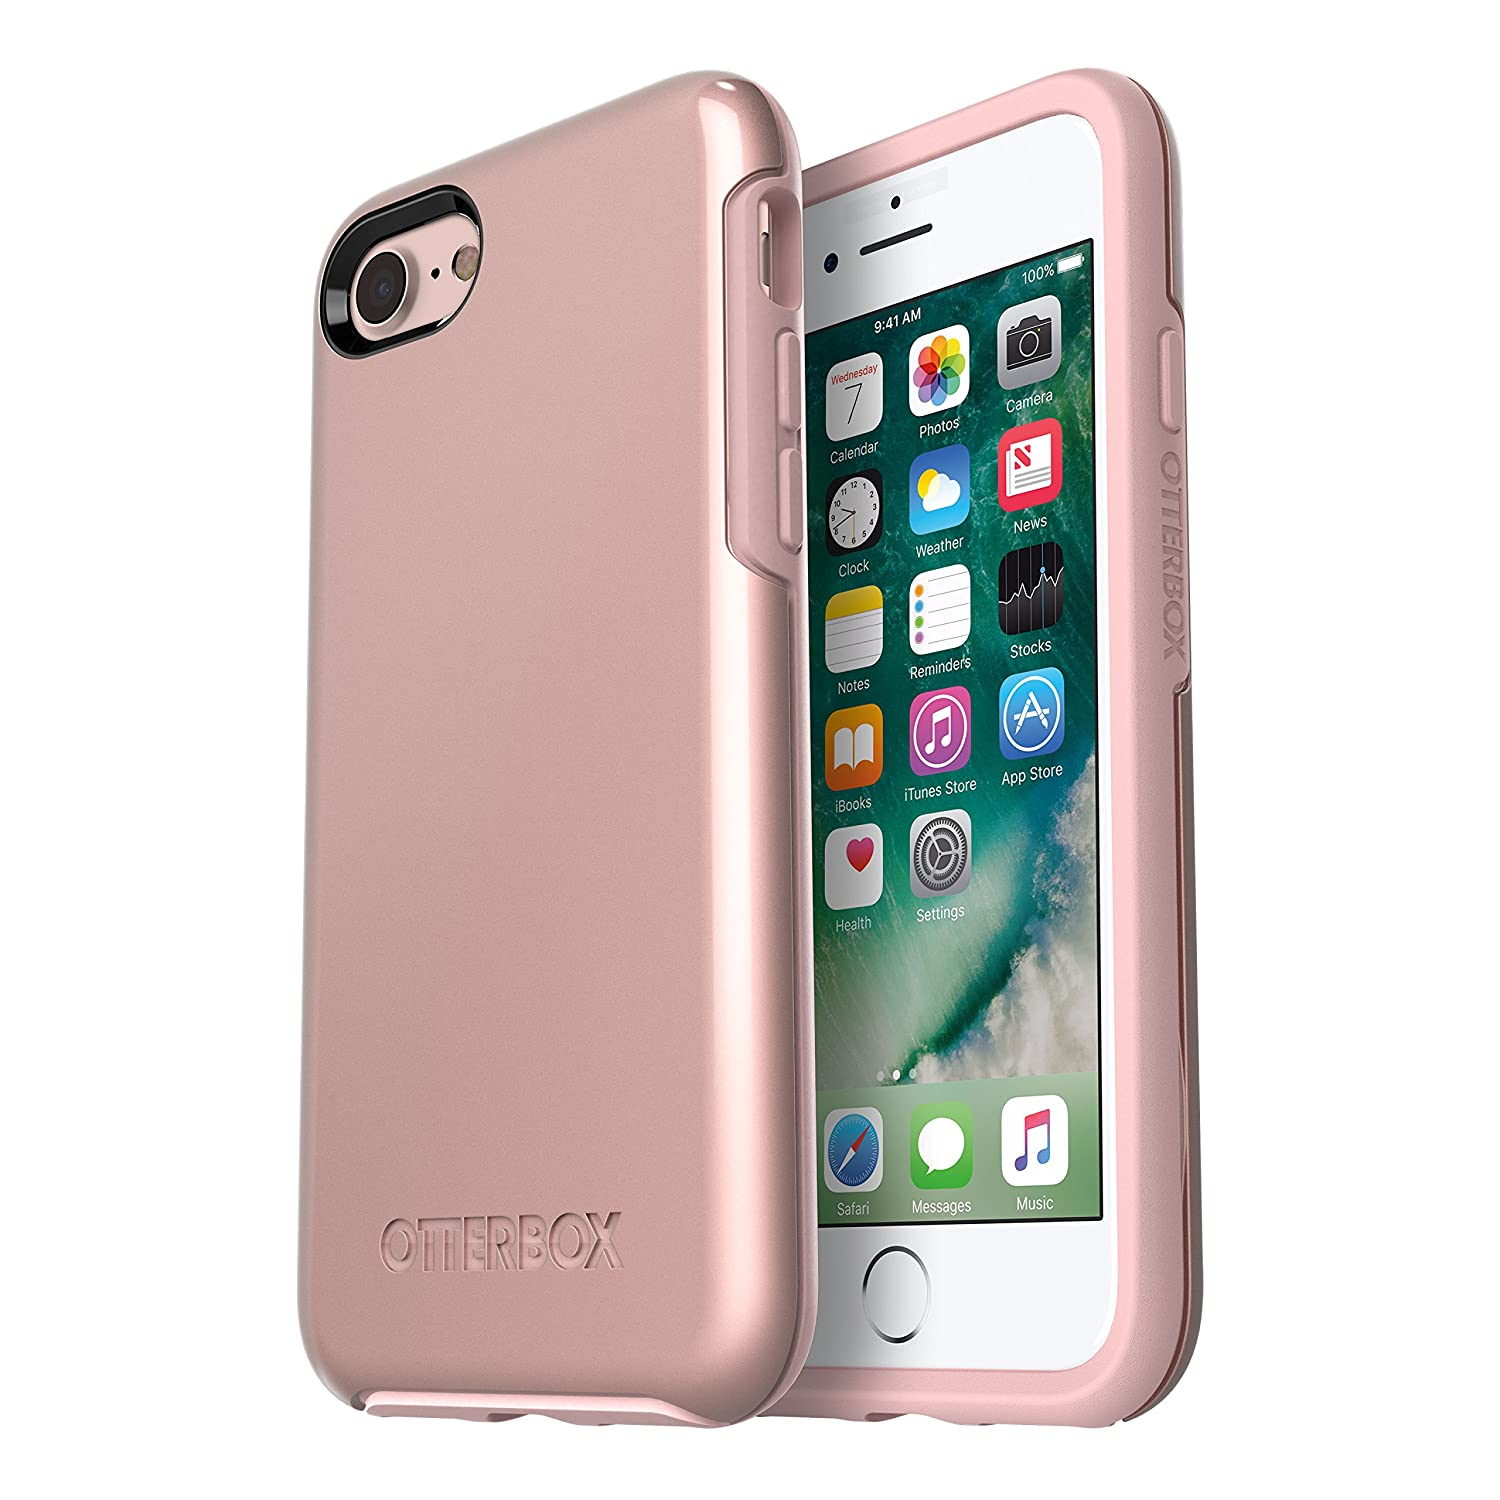 OtterBox SYMMETRY SERIES Case for iPhone 8 & iPhone 7 (NOT Plus) - Retail Packaging - ROSE GOLD (PALE PINK/ROSE GOLD GRAPHIC) 77-55963